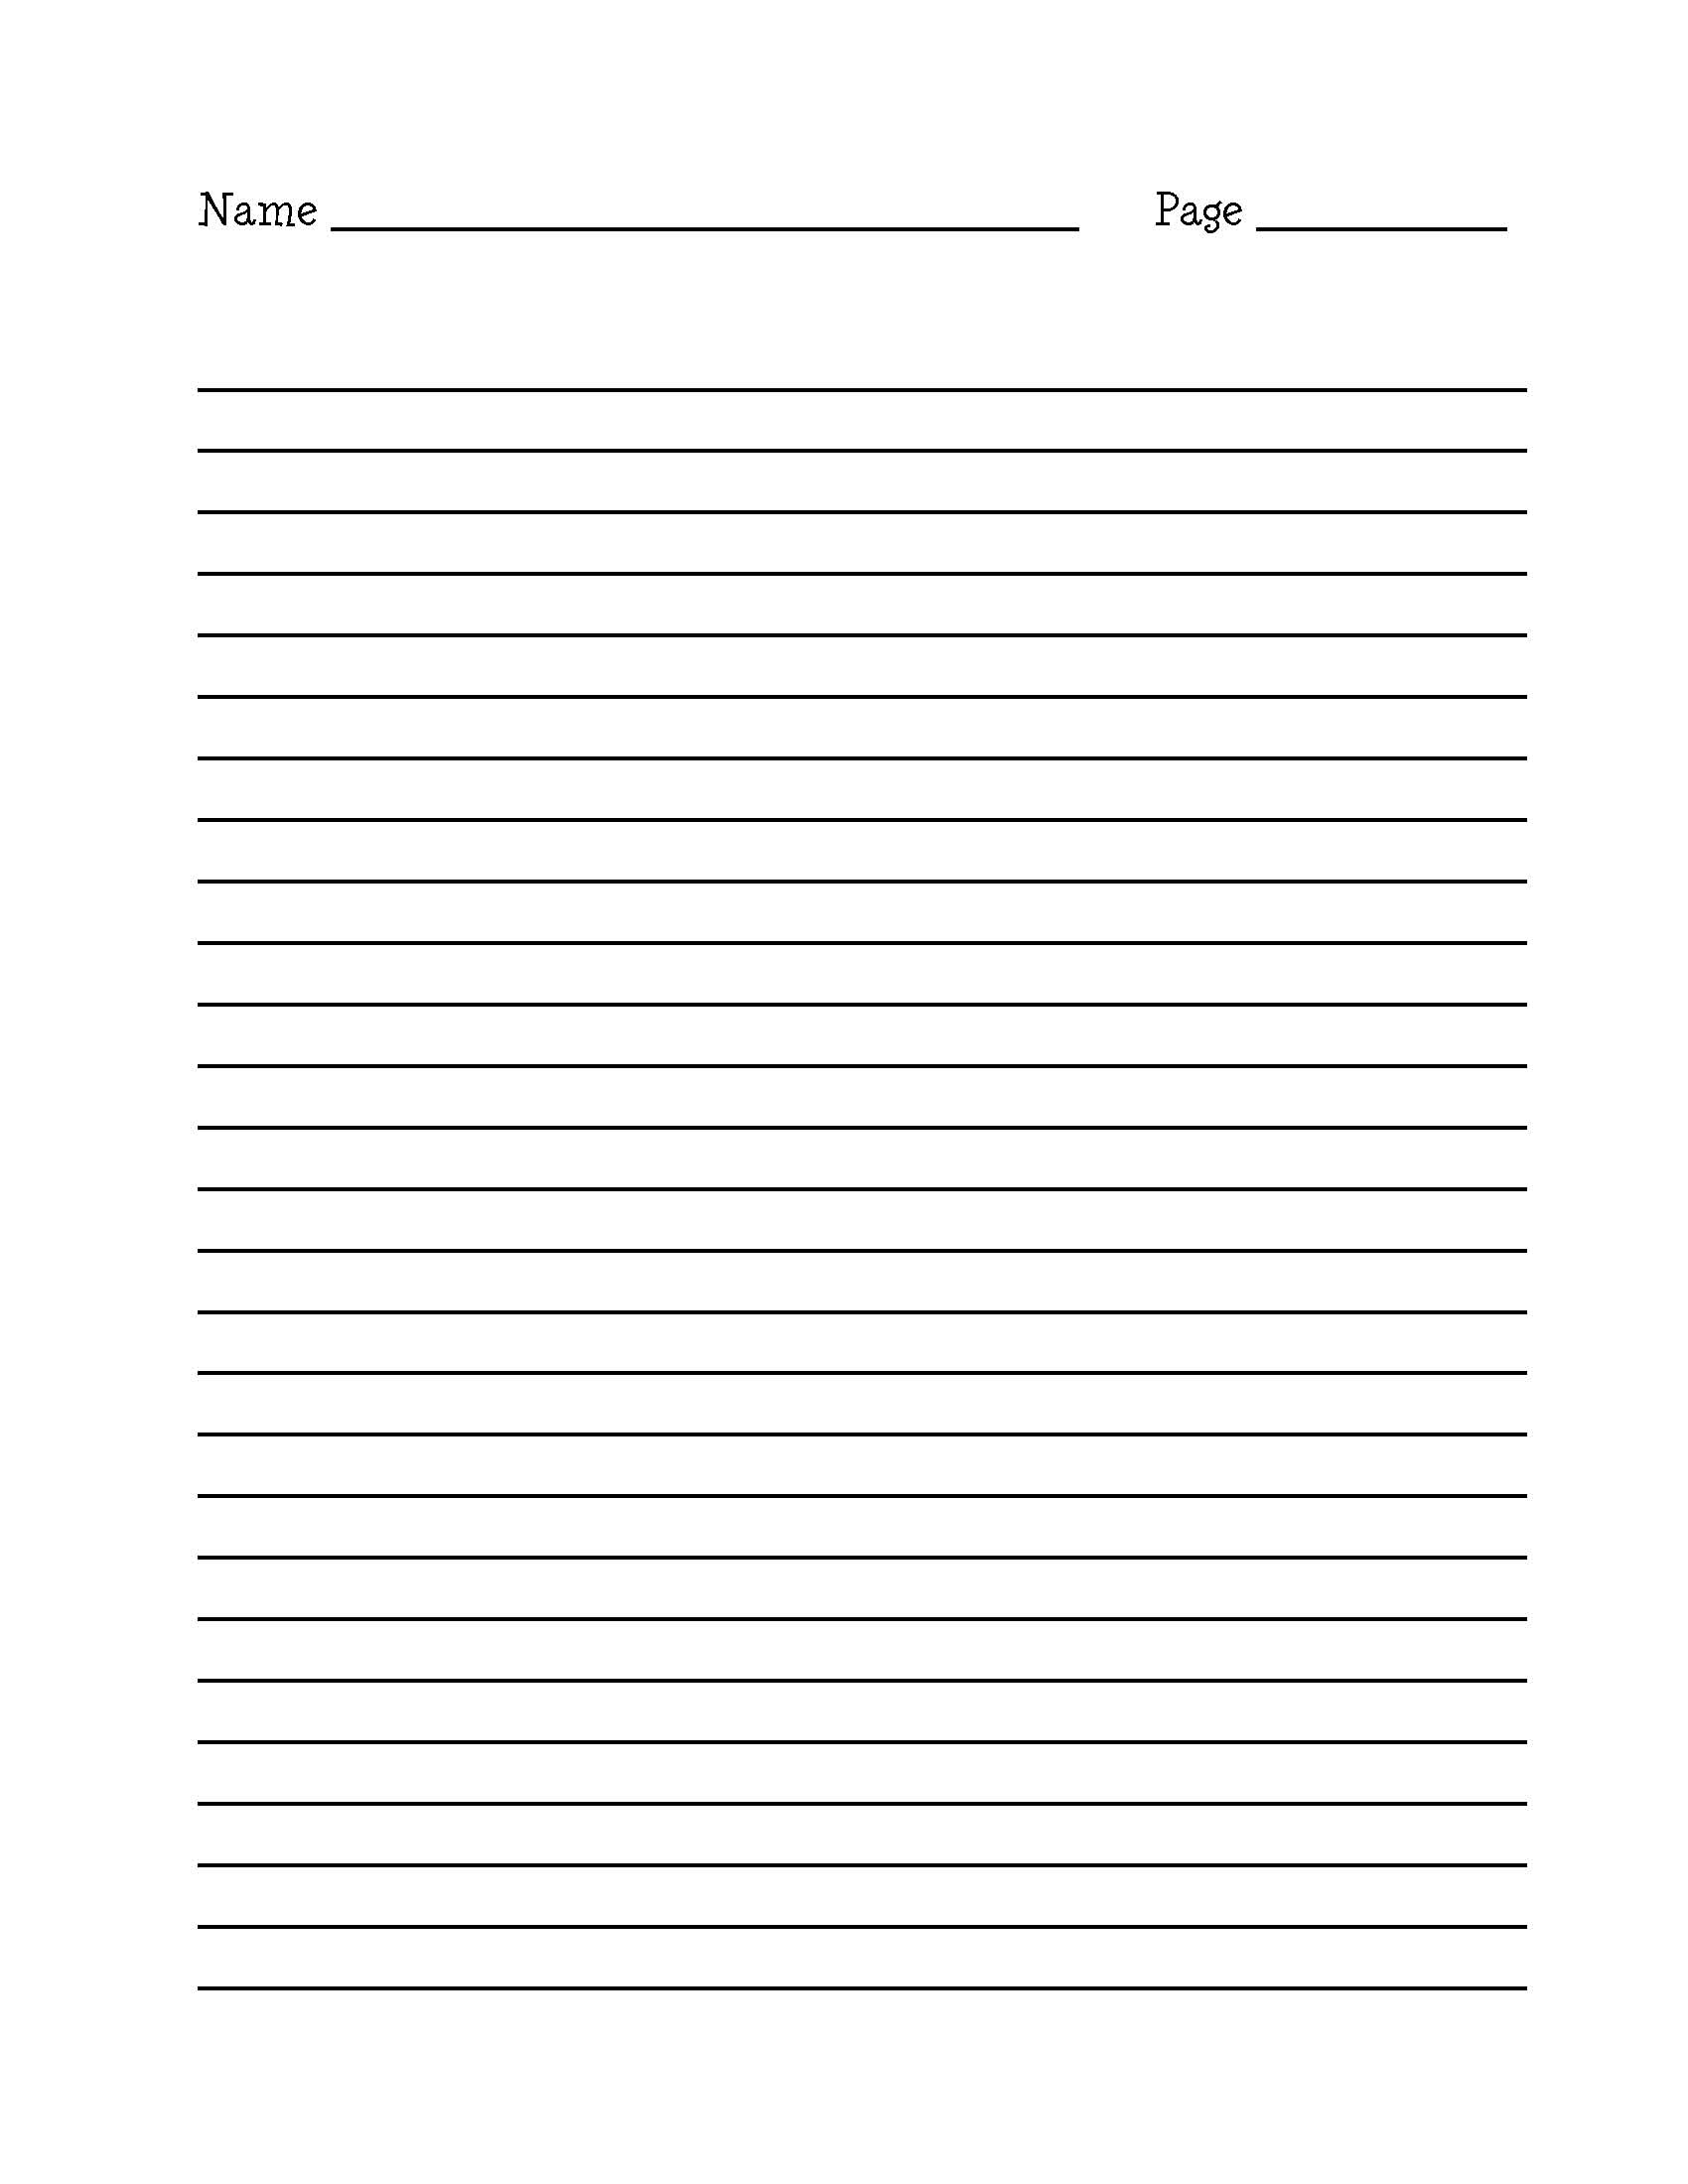 A4 Lined paper templates Print and download 15 templates Table of